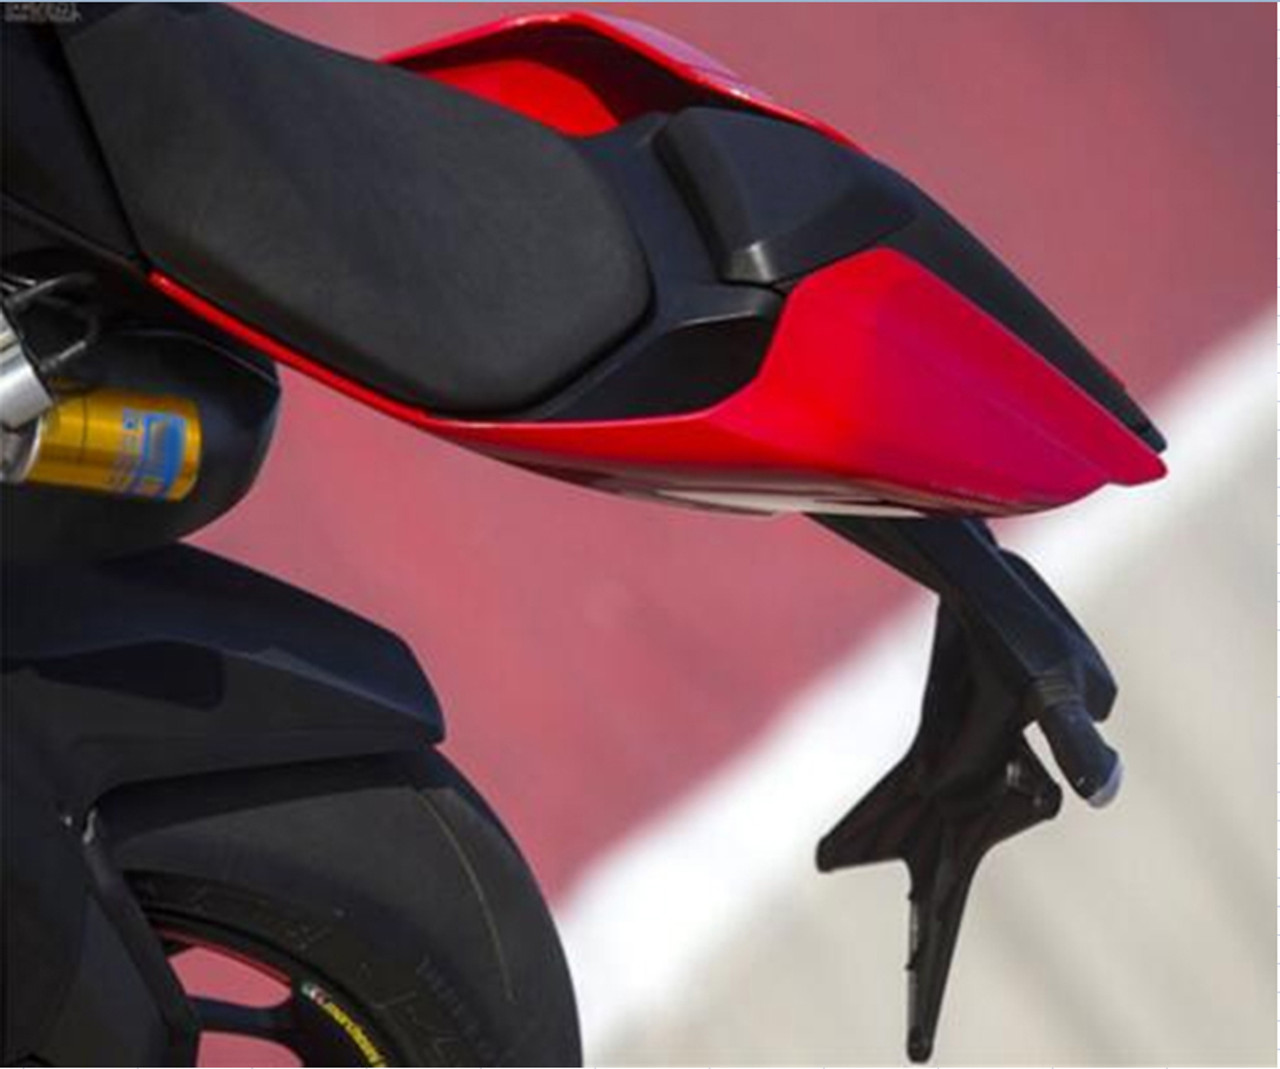 Rear Tail Solo Seat Cover Cowl Fairing for Ducati 1299 Panigale (2015-2016) Black